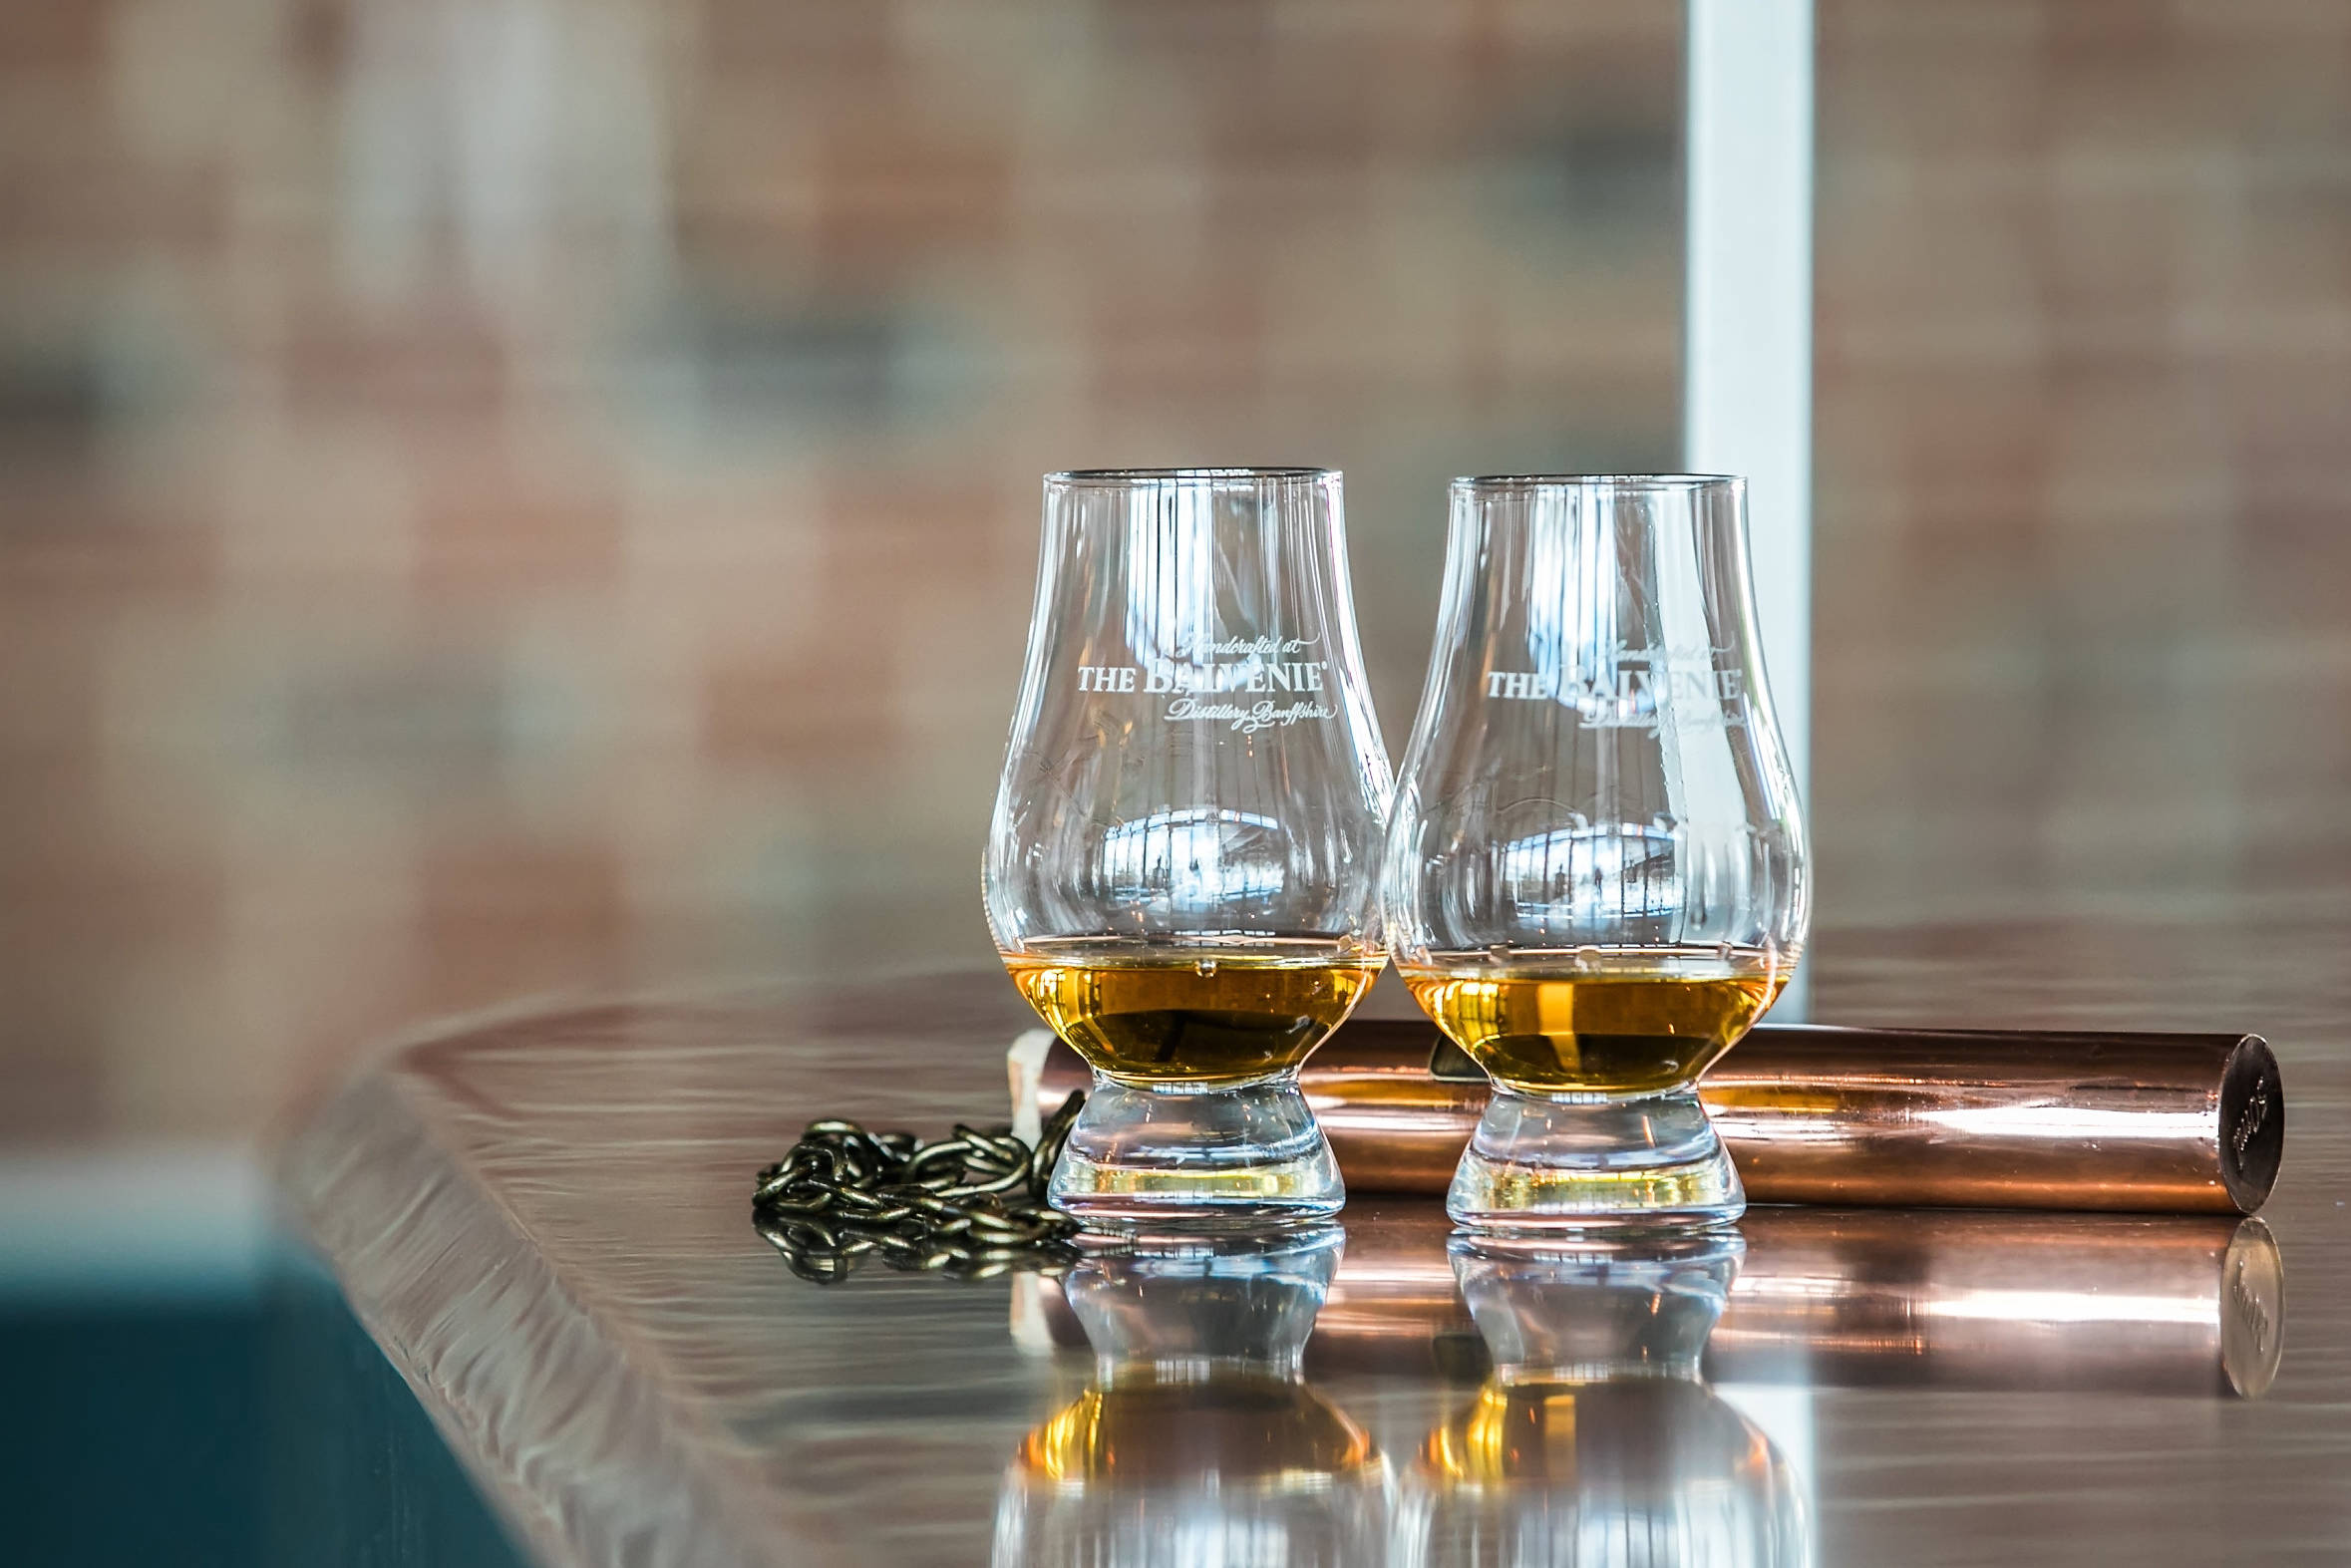 Two glasses of whiskey in the Rooftop Restaurant bar.